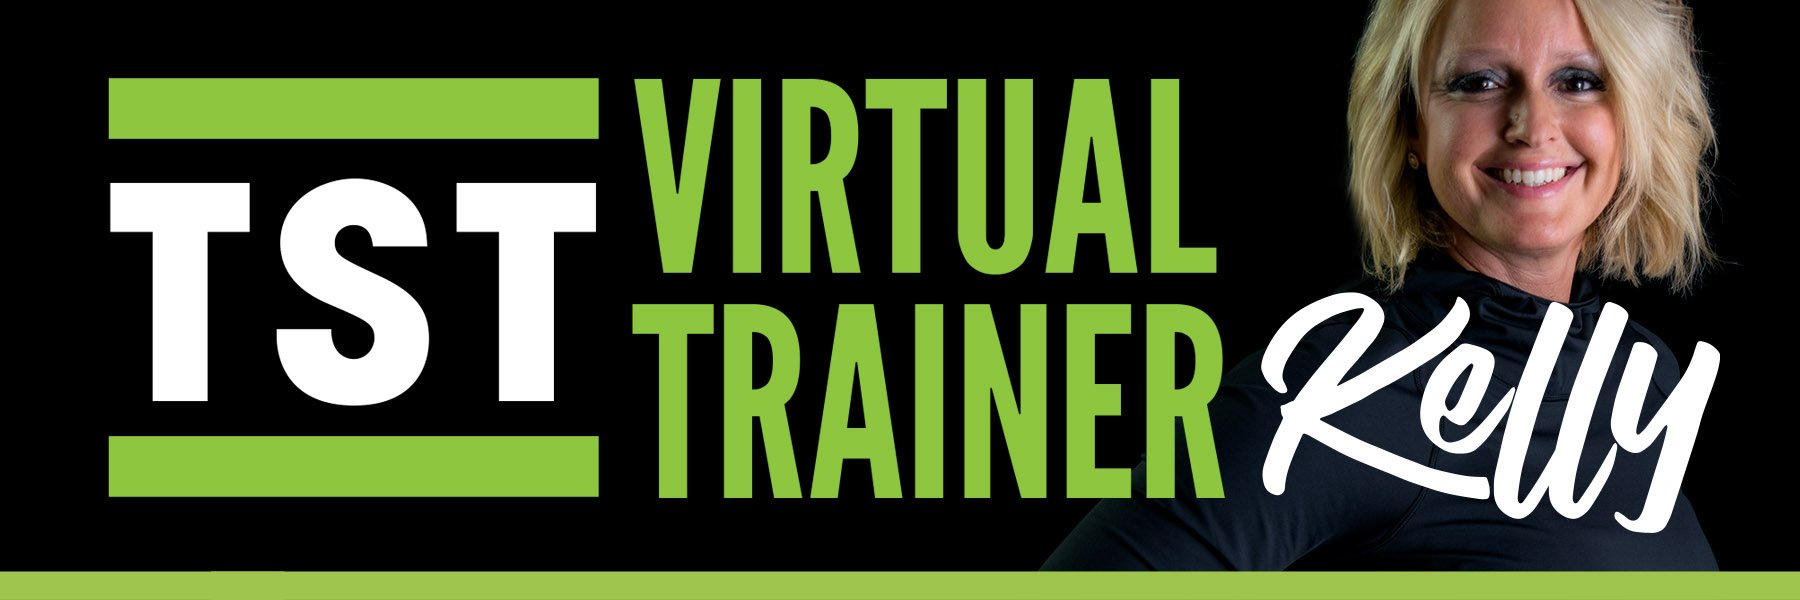 TST20 Virtual Trainer with Kelly